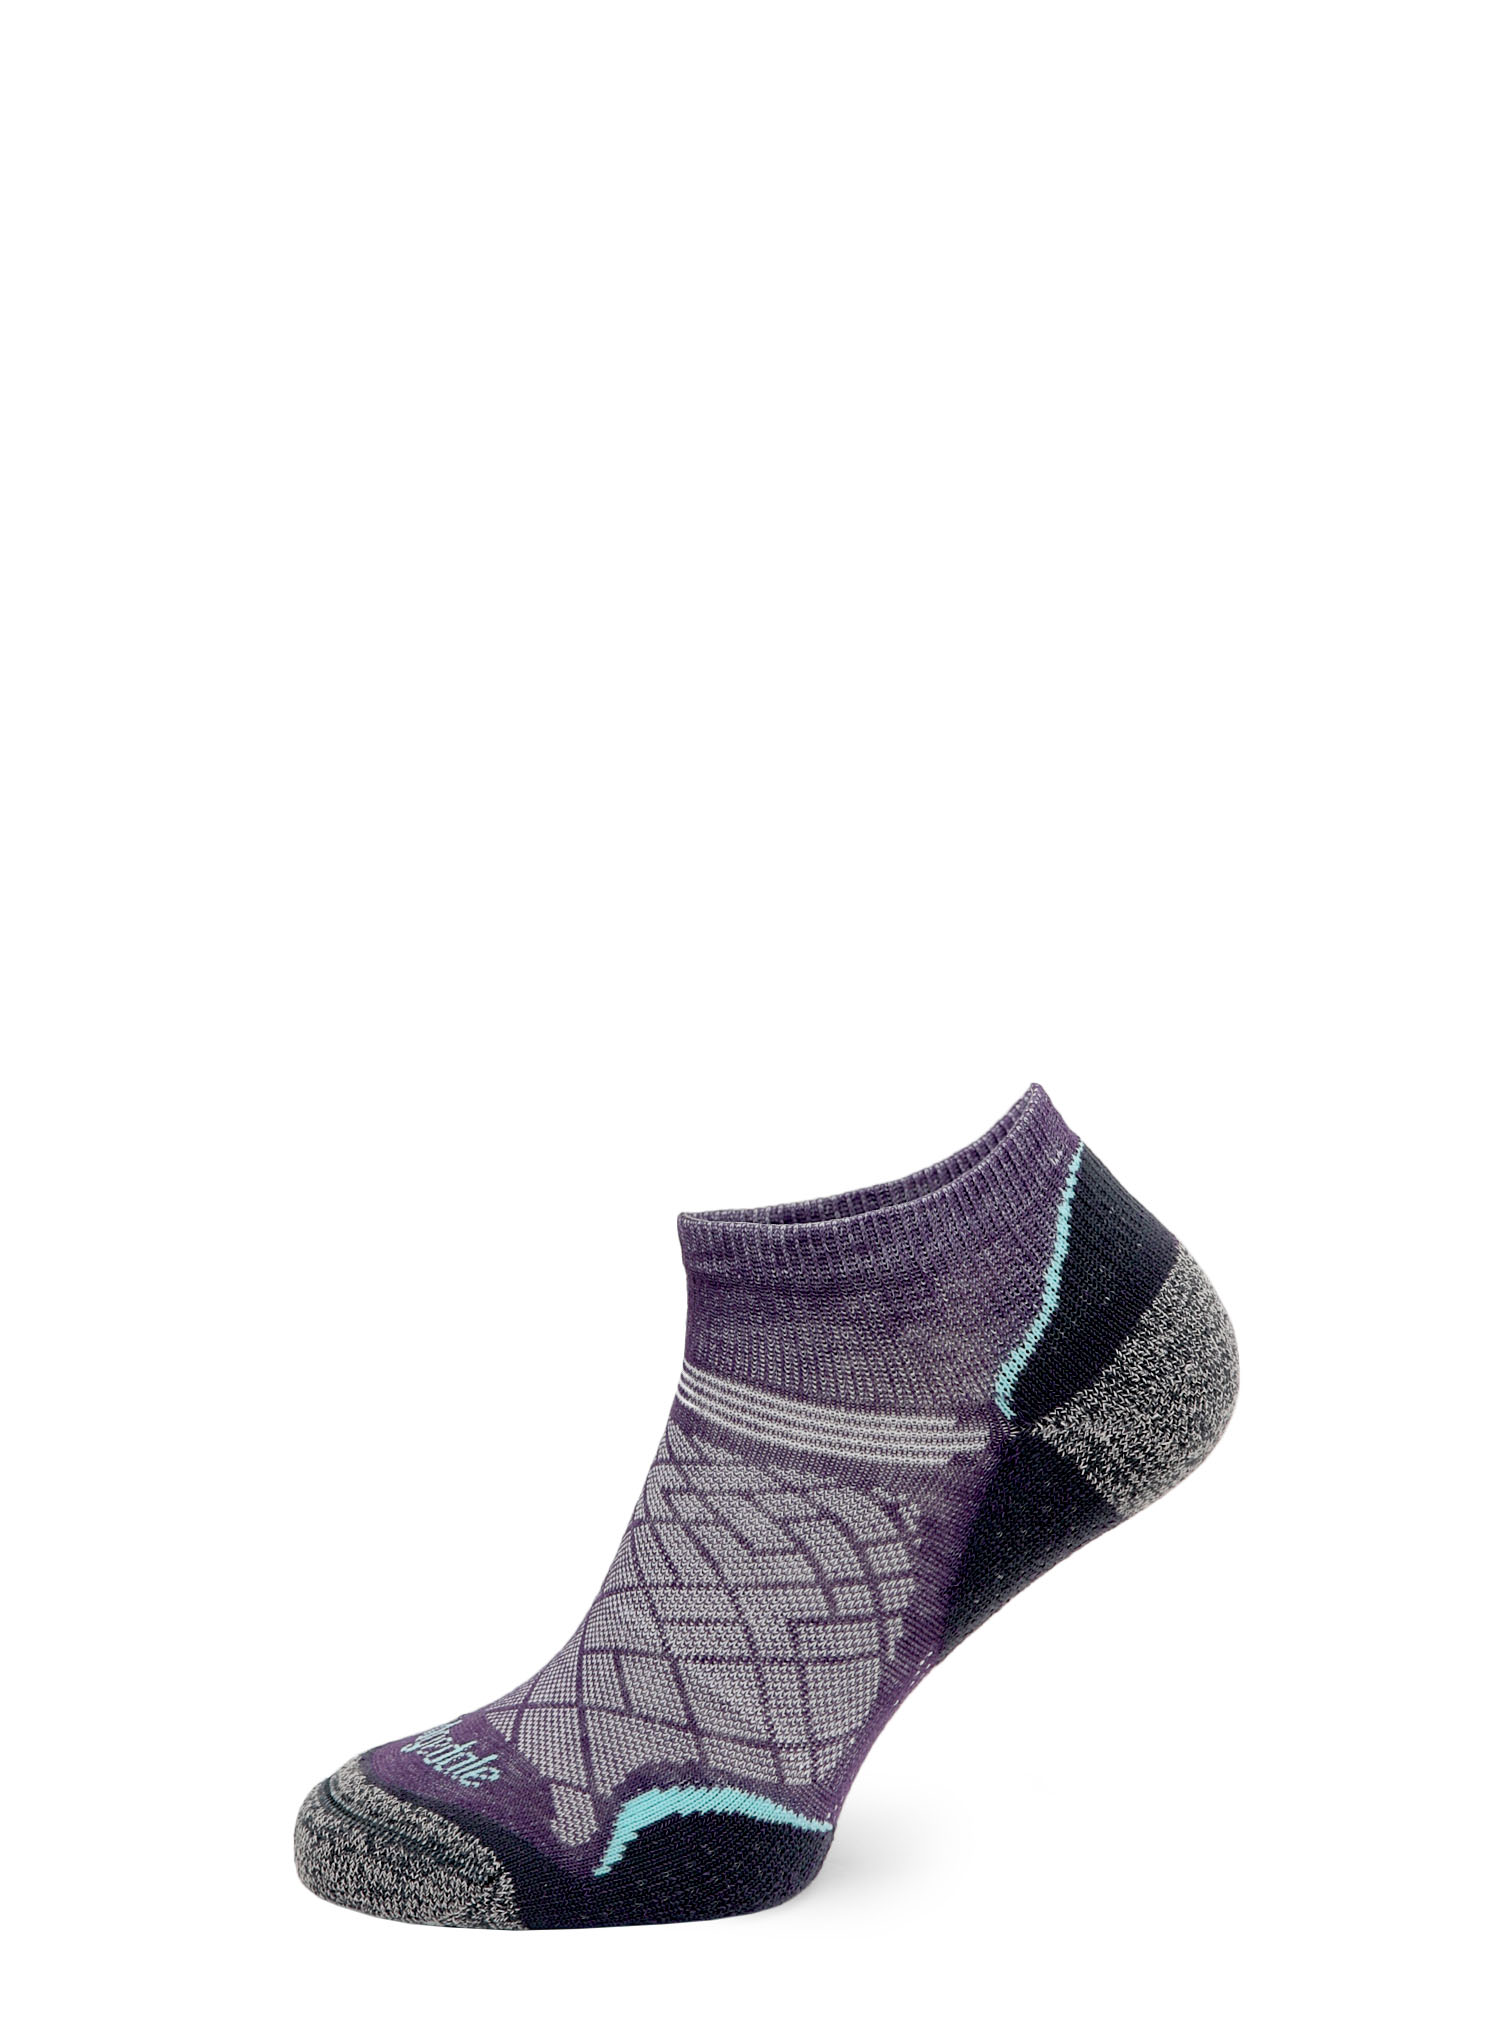 Skarpetki Bridgedale Hike Ultra Lt T2 Coolmax P Low - purple/grey - zdjęcie nr. 5